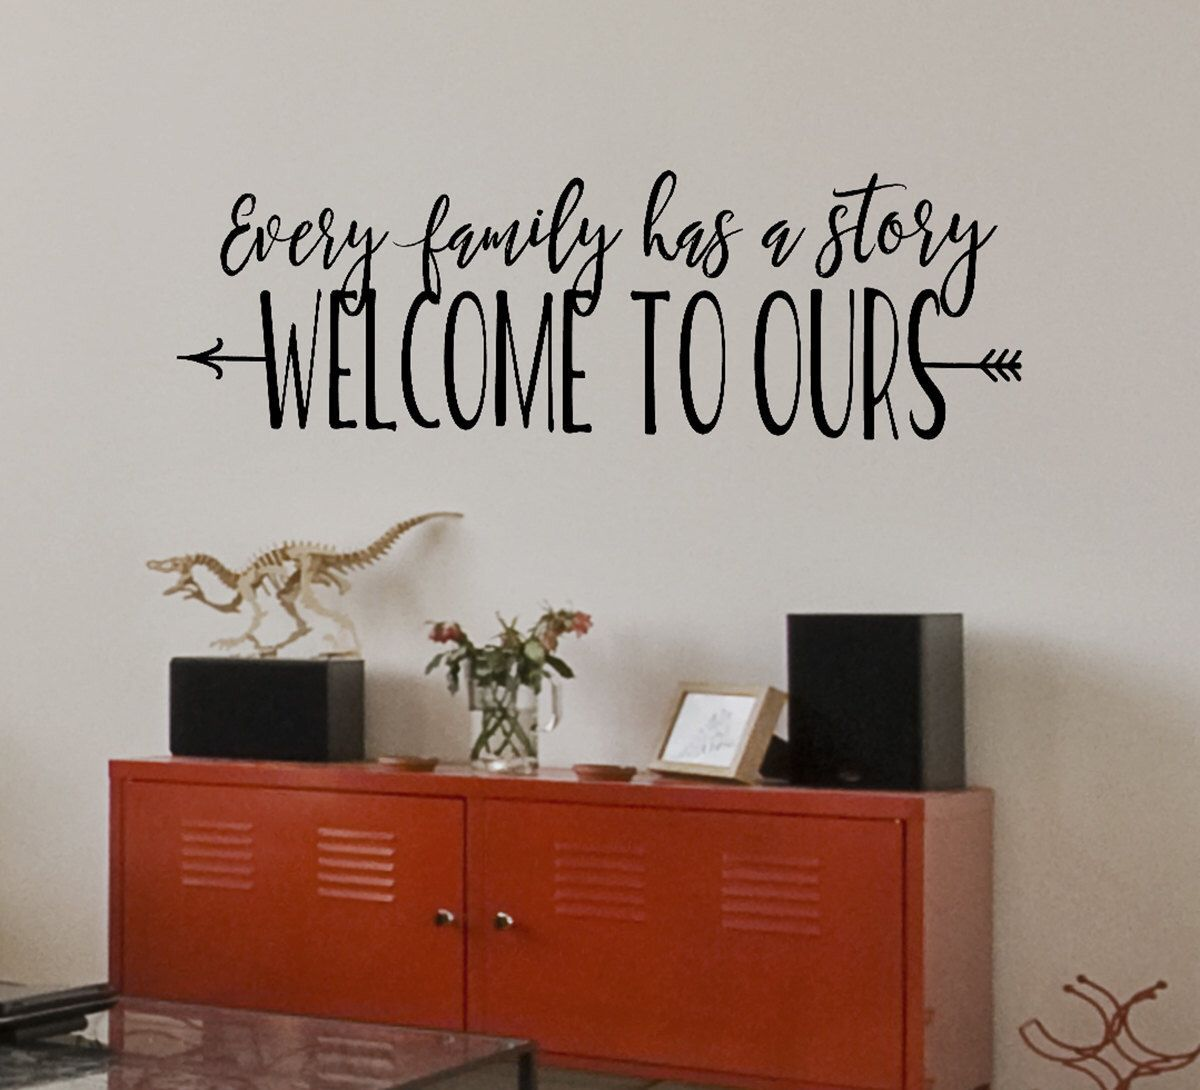 Family Room Wall Decals Quotes